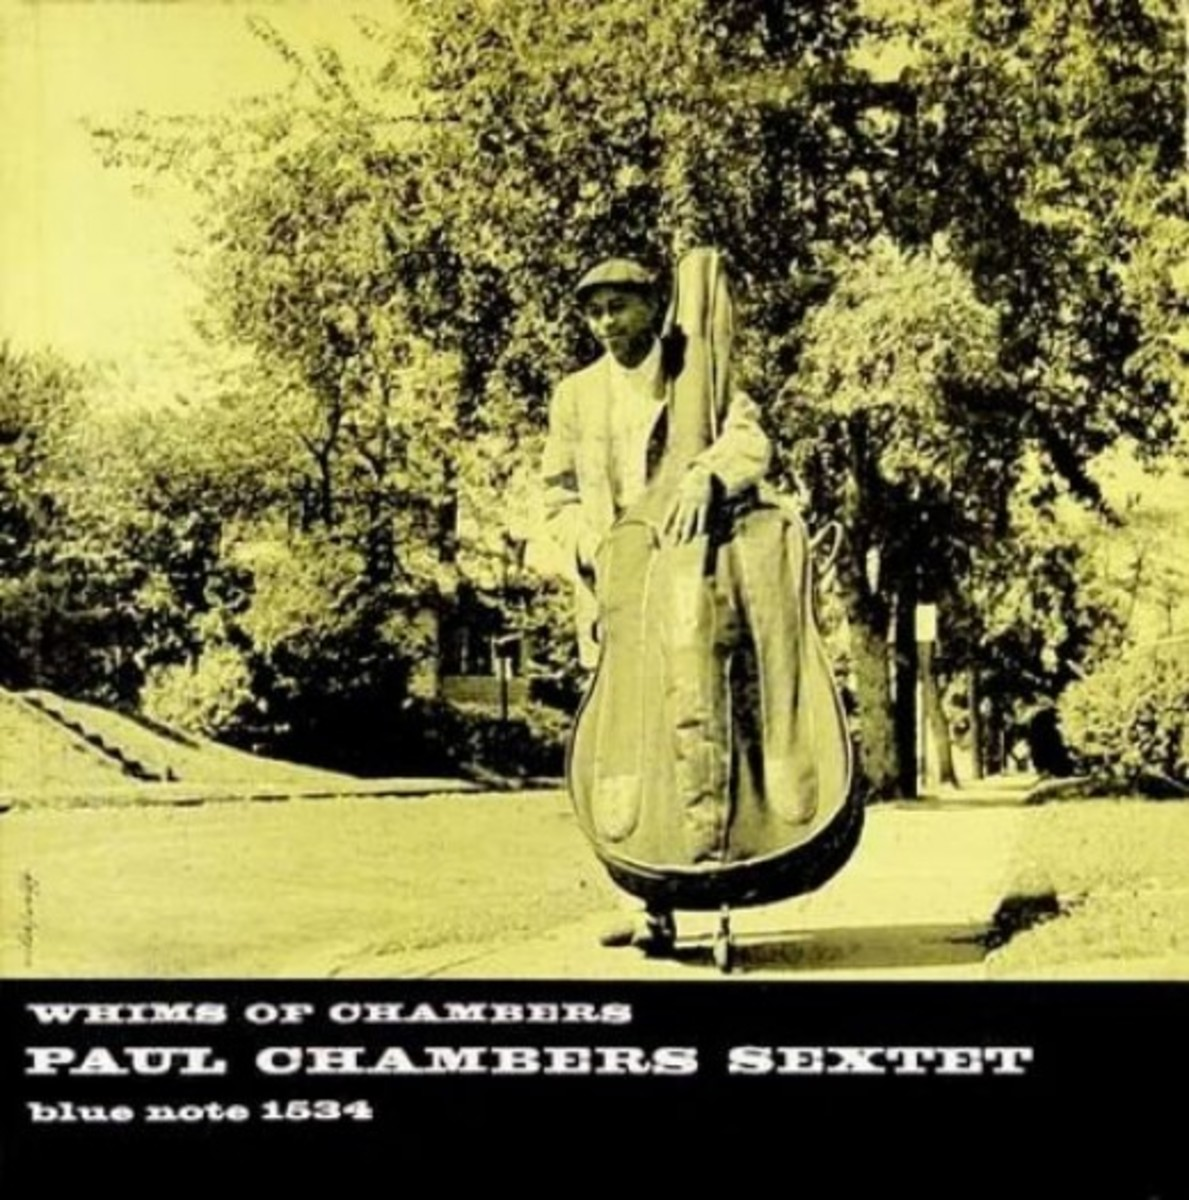 """Paul Chambers """"Whims of Chambers"""" Blue Note Records BLP 1534 12"""" LP Vinyl Record (1956) Album Cover Design by Reid Miles Photograph by Francis Wolff"""